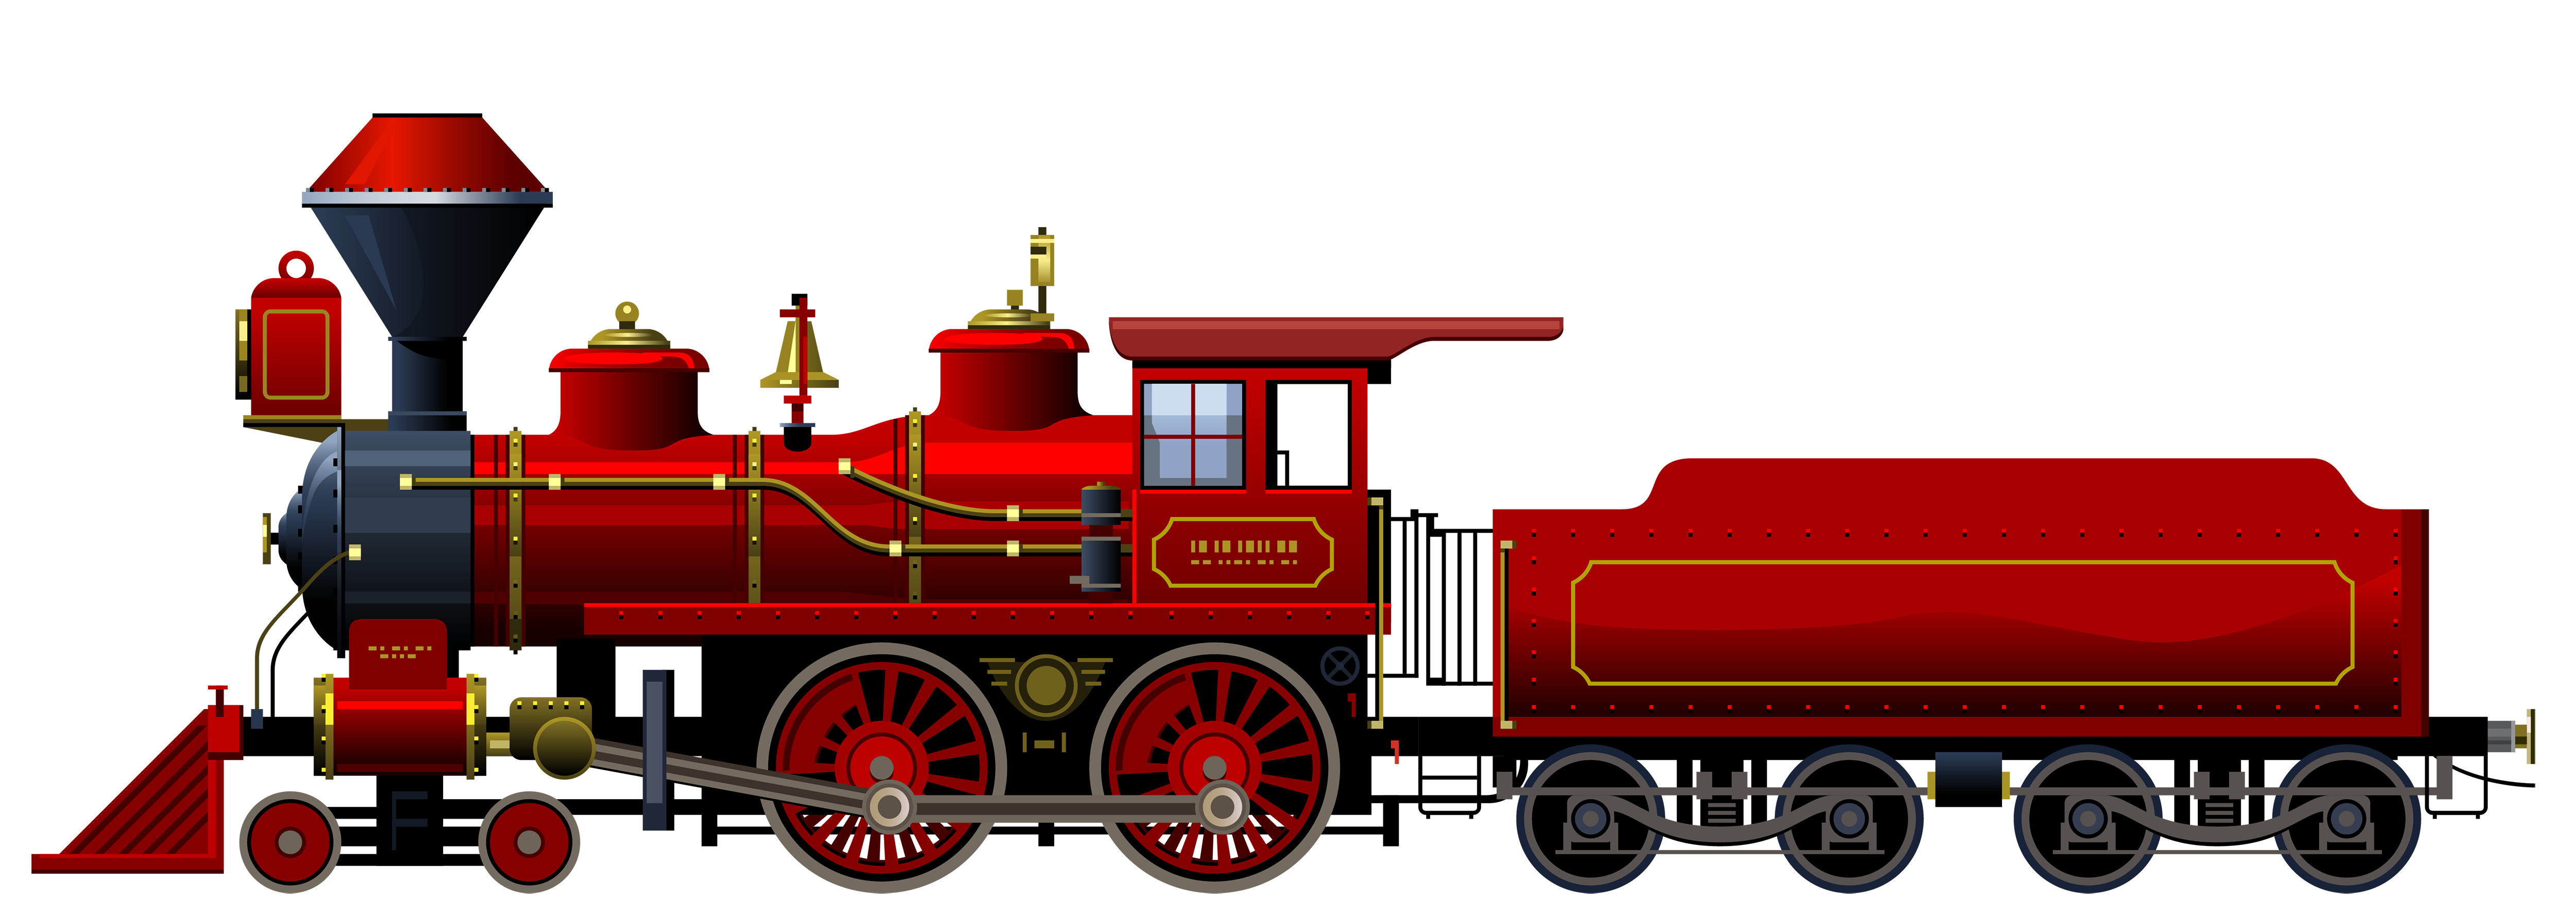 5000x1776 Red Locomotive Png Clipart